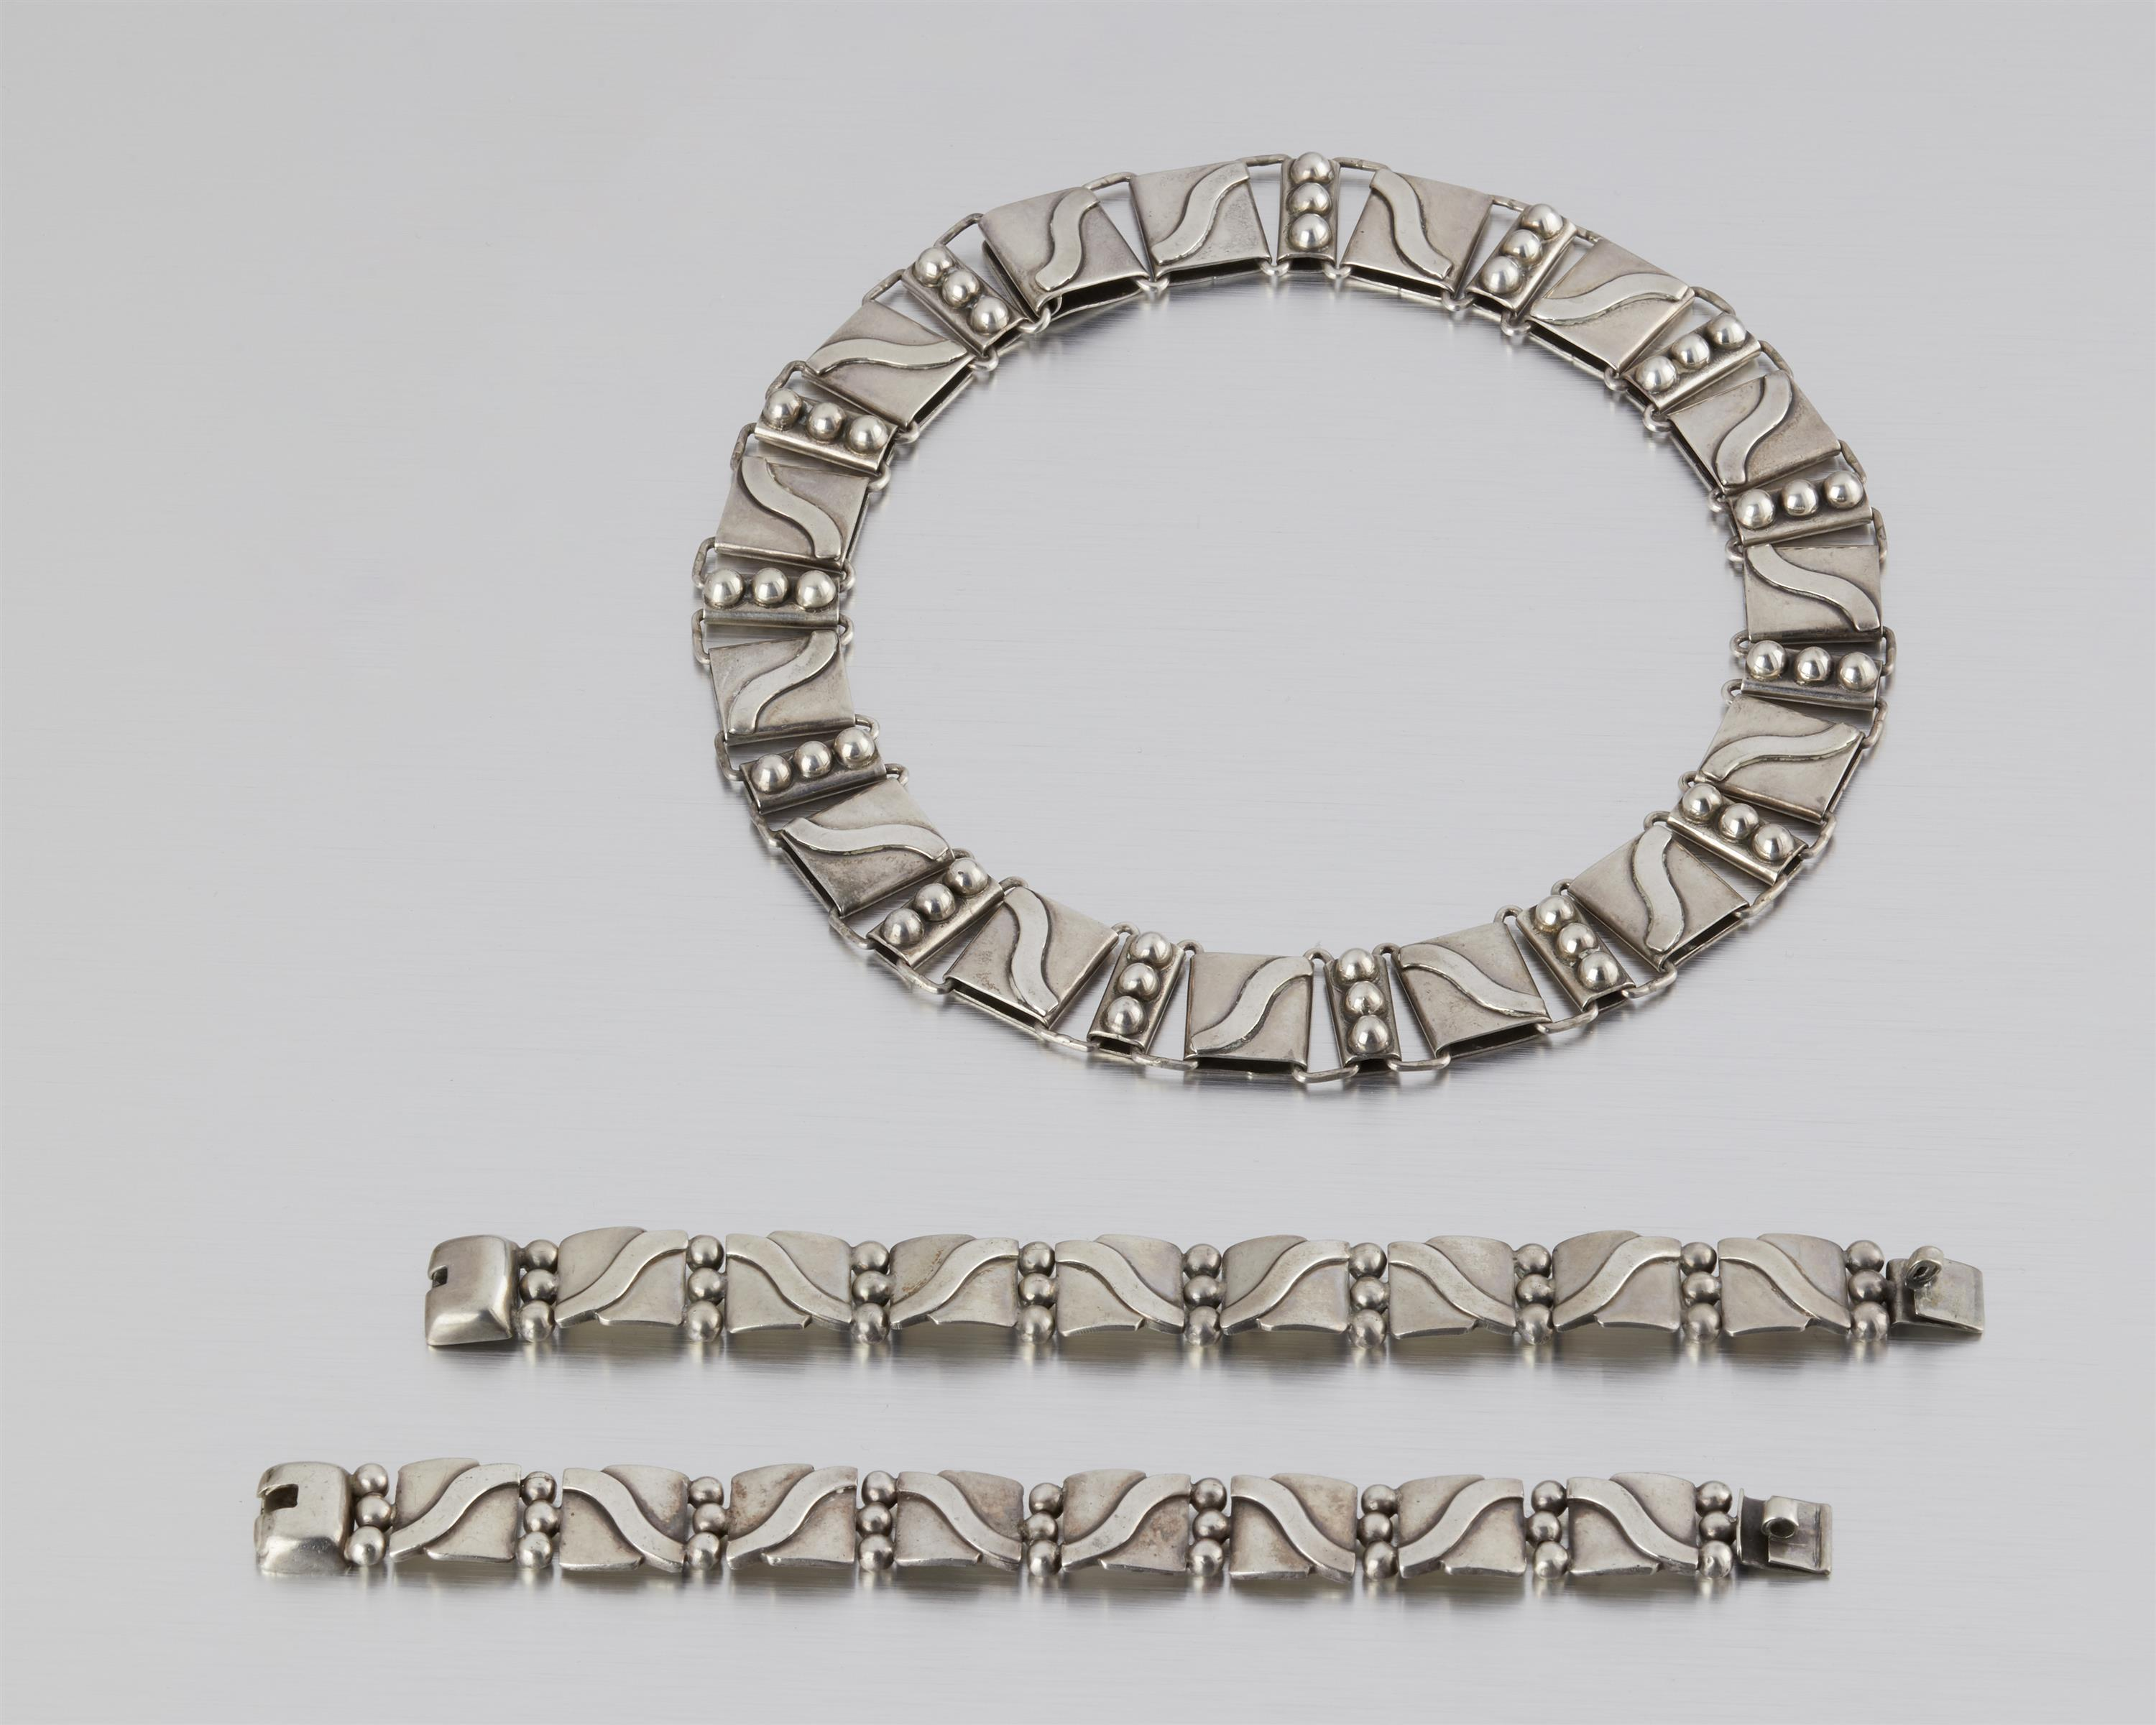 A set of Hector Aguilar silver jewelry